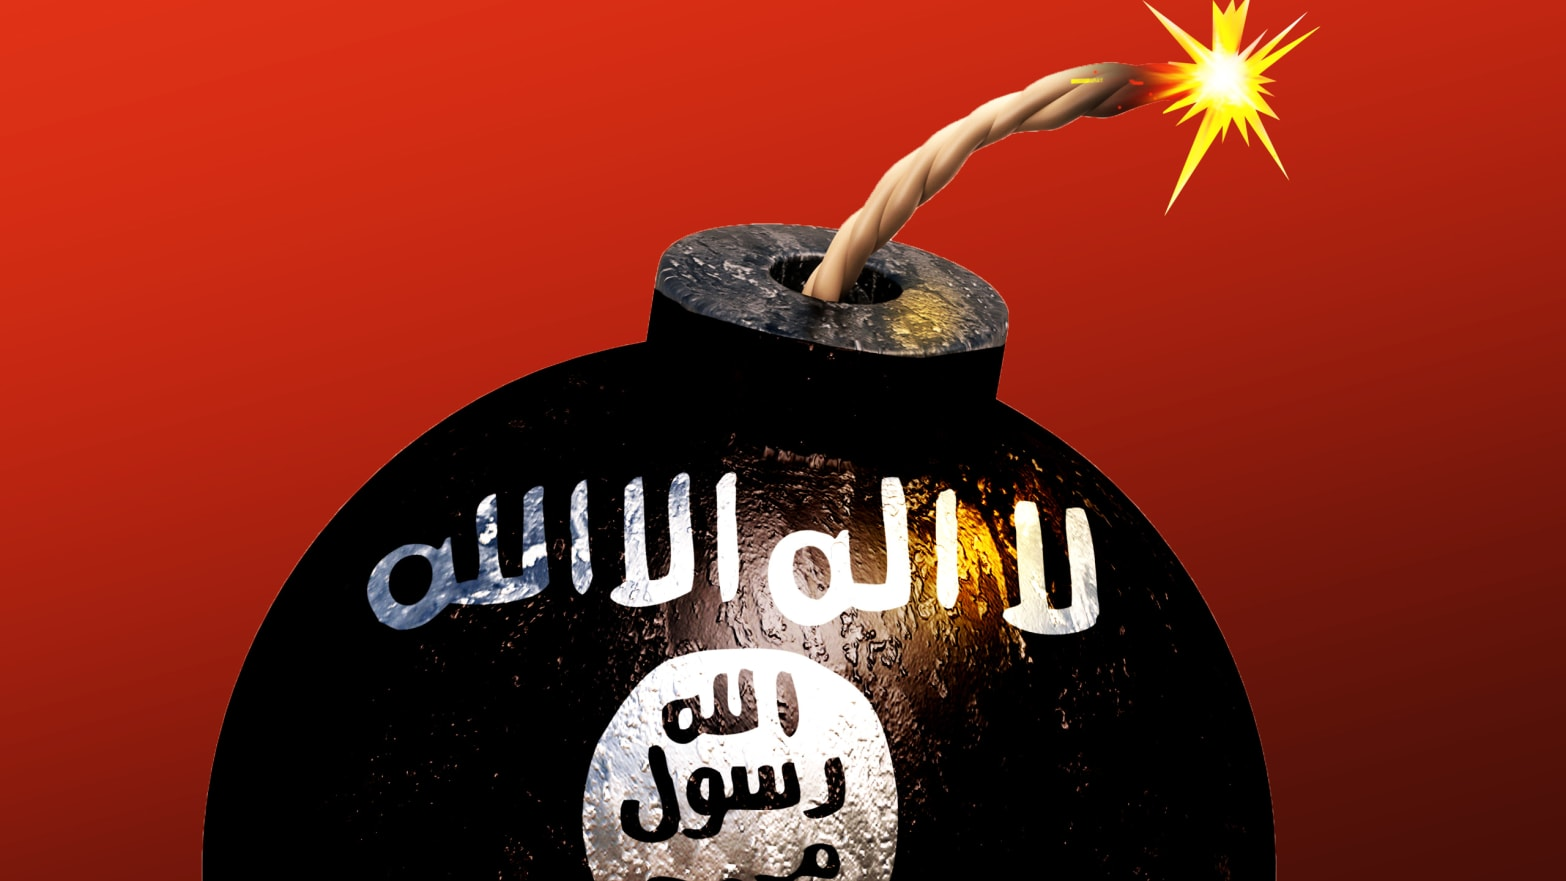 Jihadis in Europe appear to be linked up with well-organized criminal networks—a nightmare scenario for future carnage.